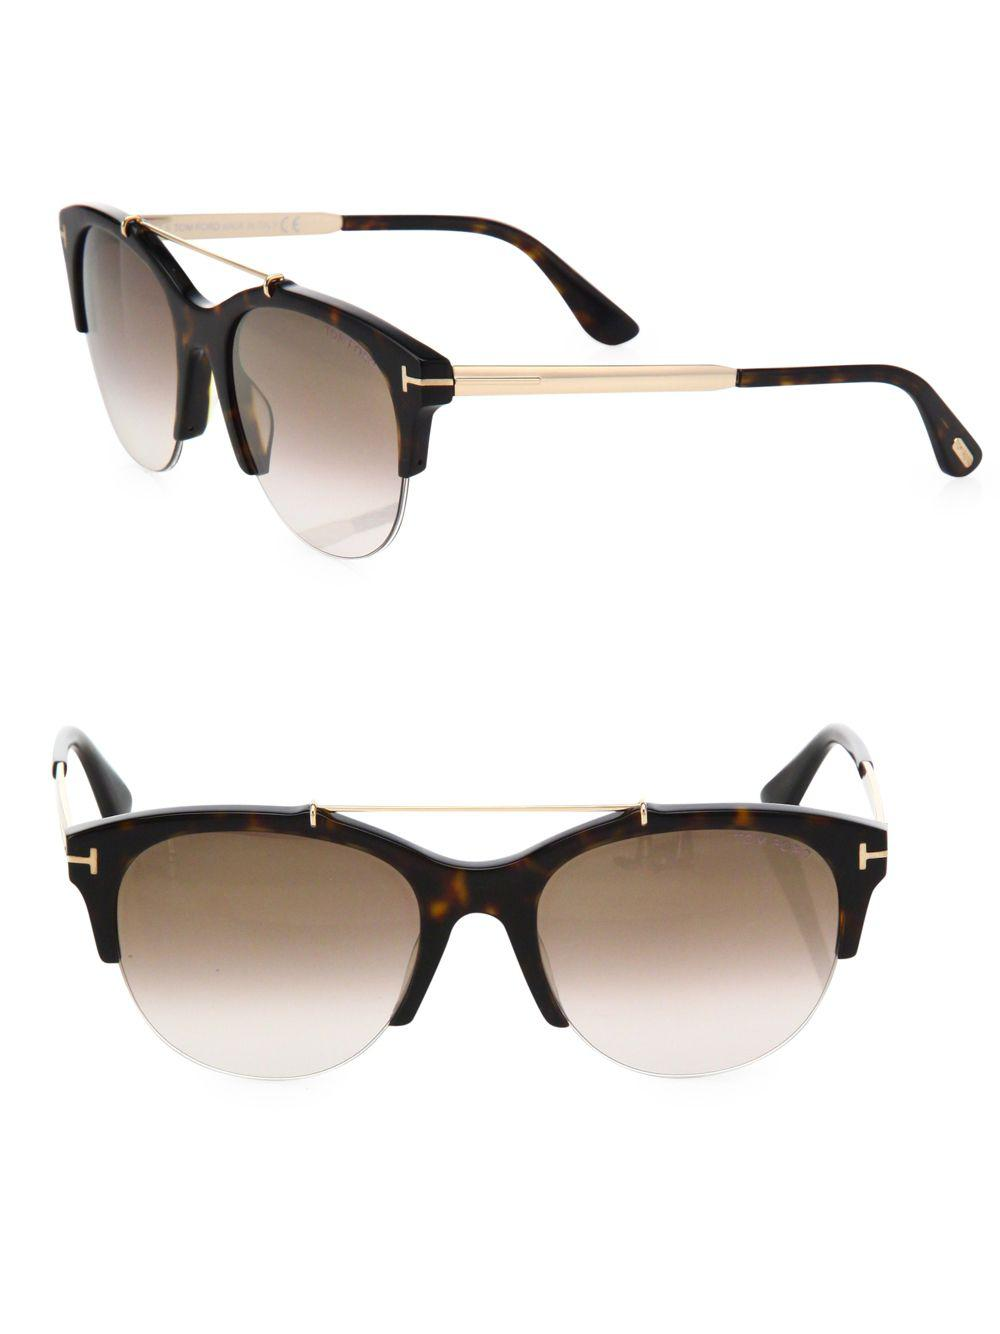 7a1ce8b0c0f Lyst - Tom Ford Adrenne 55mm Mirrored Round Sunglasses in Brown